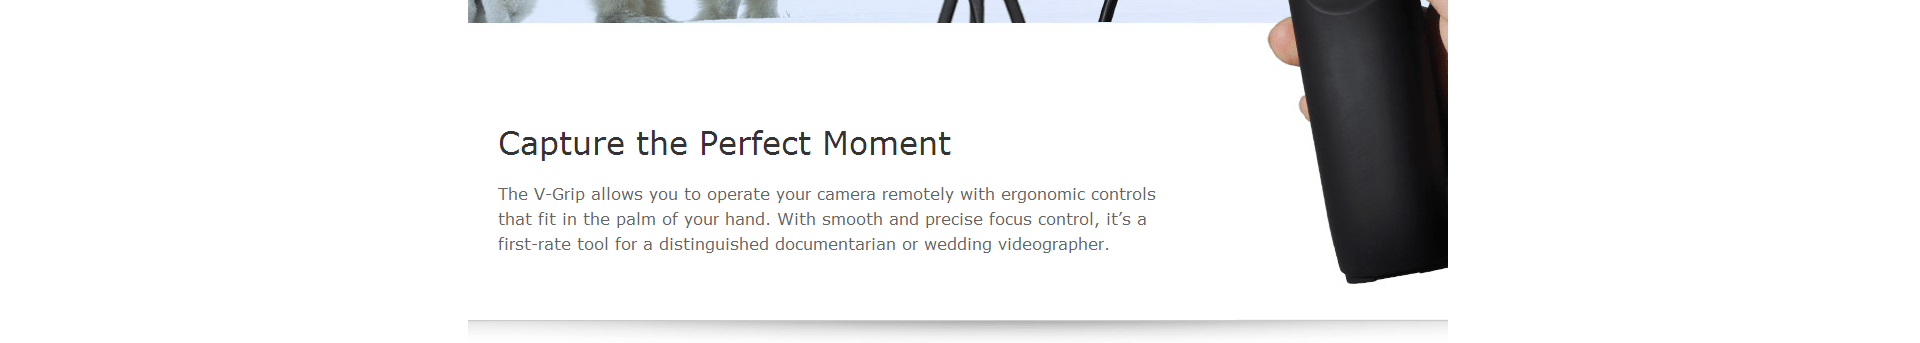 capture the perfect moment